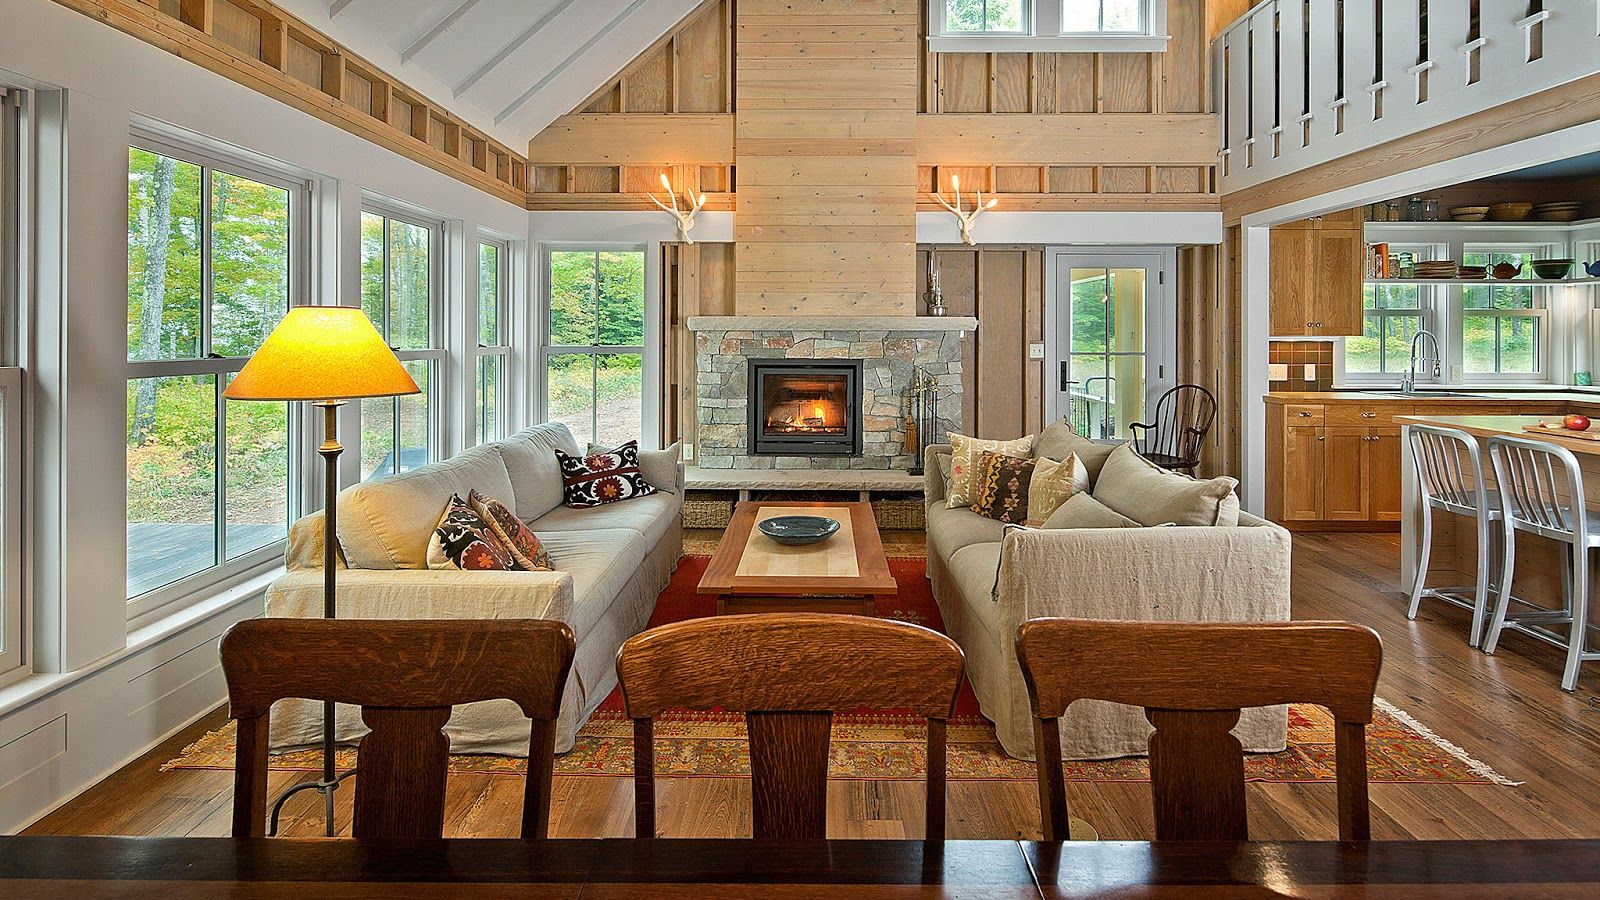 The Little Living Blog is a website sharing homes and